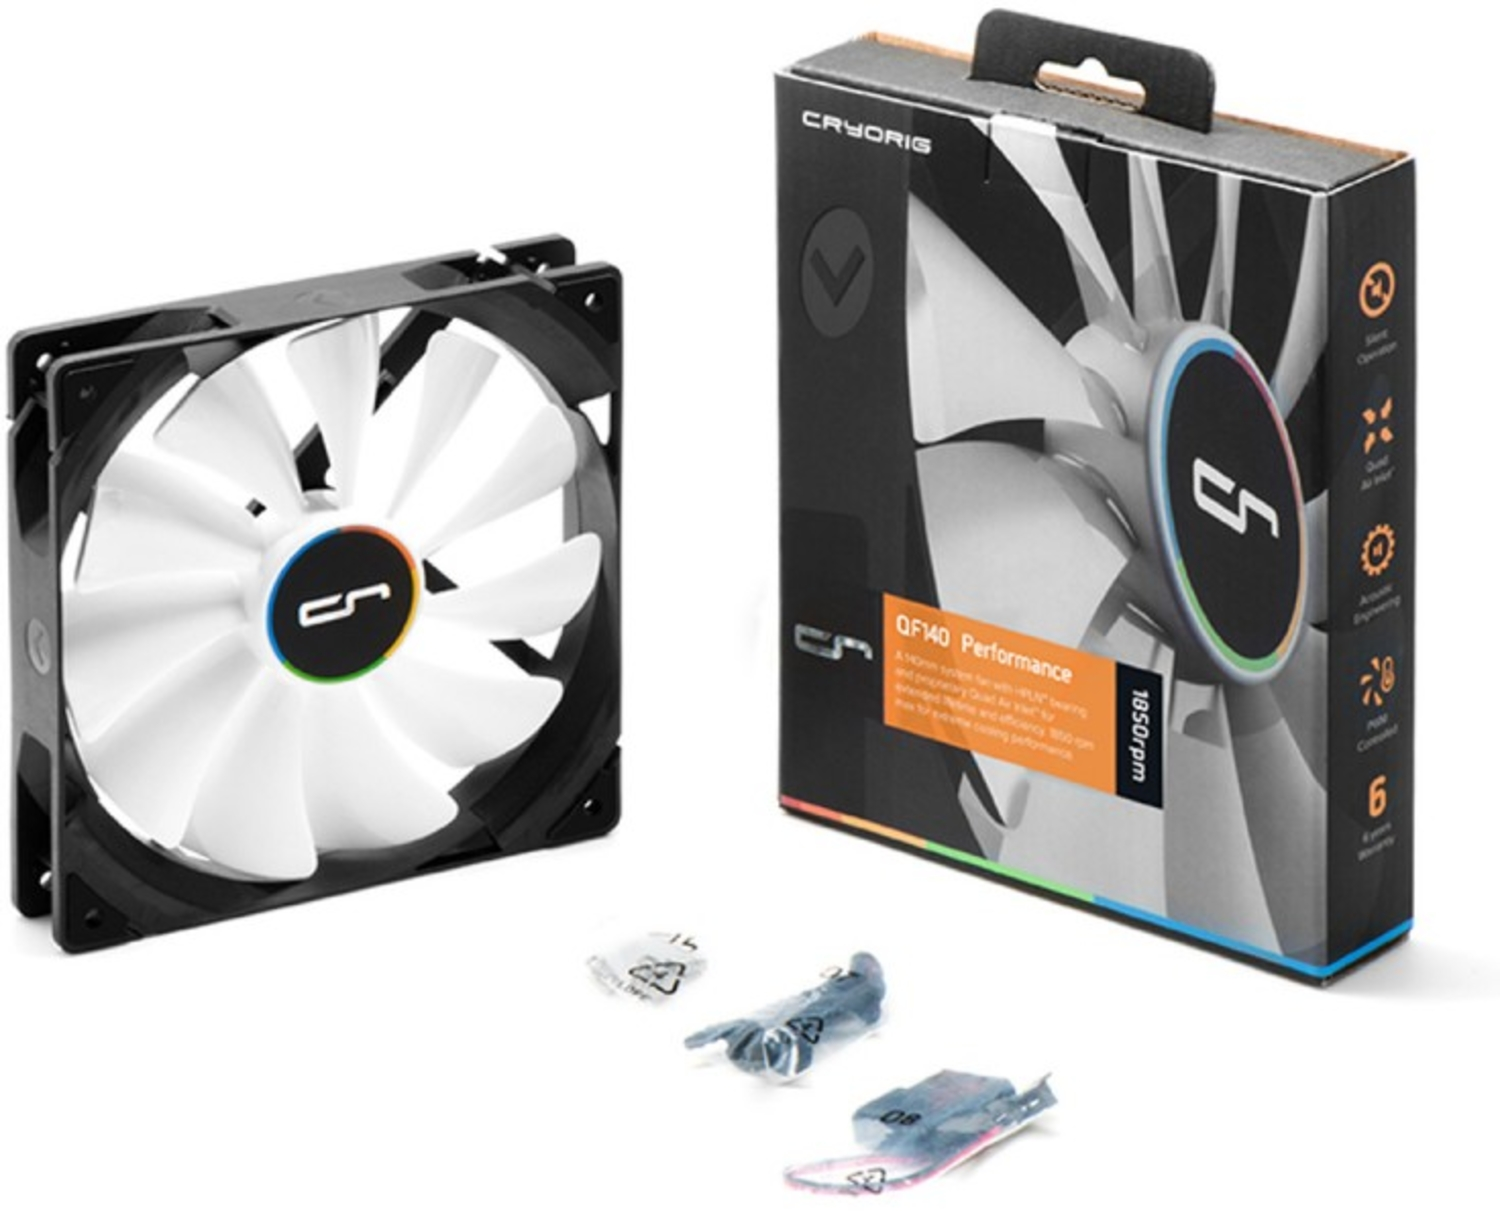 Cryorig - Ventoinha Cryorig QF140 Performance 140mm PWM 600-1850rpm